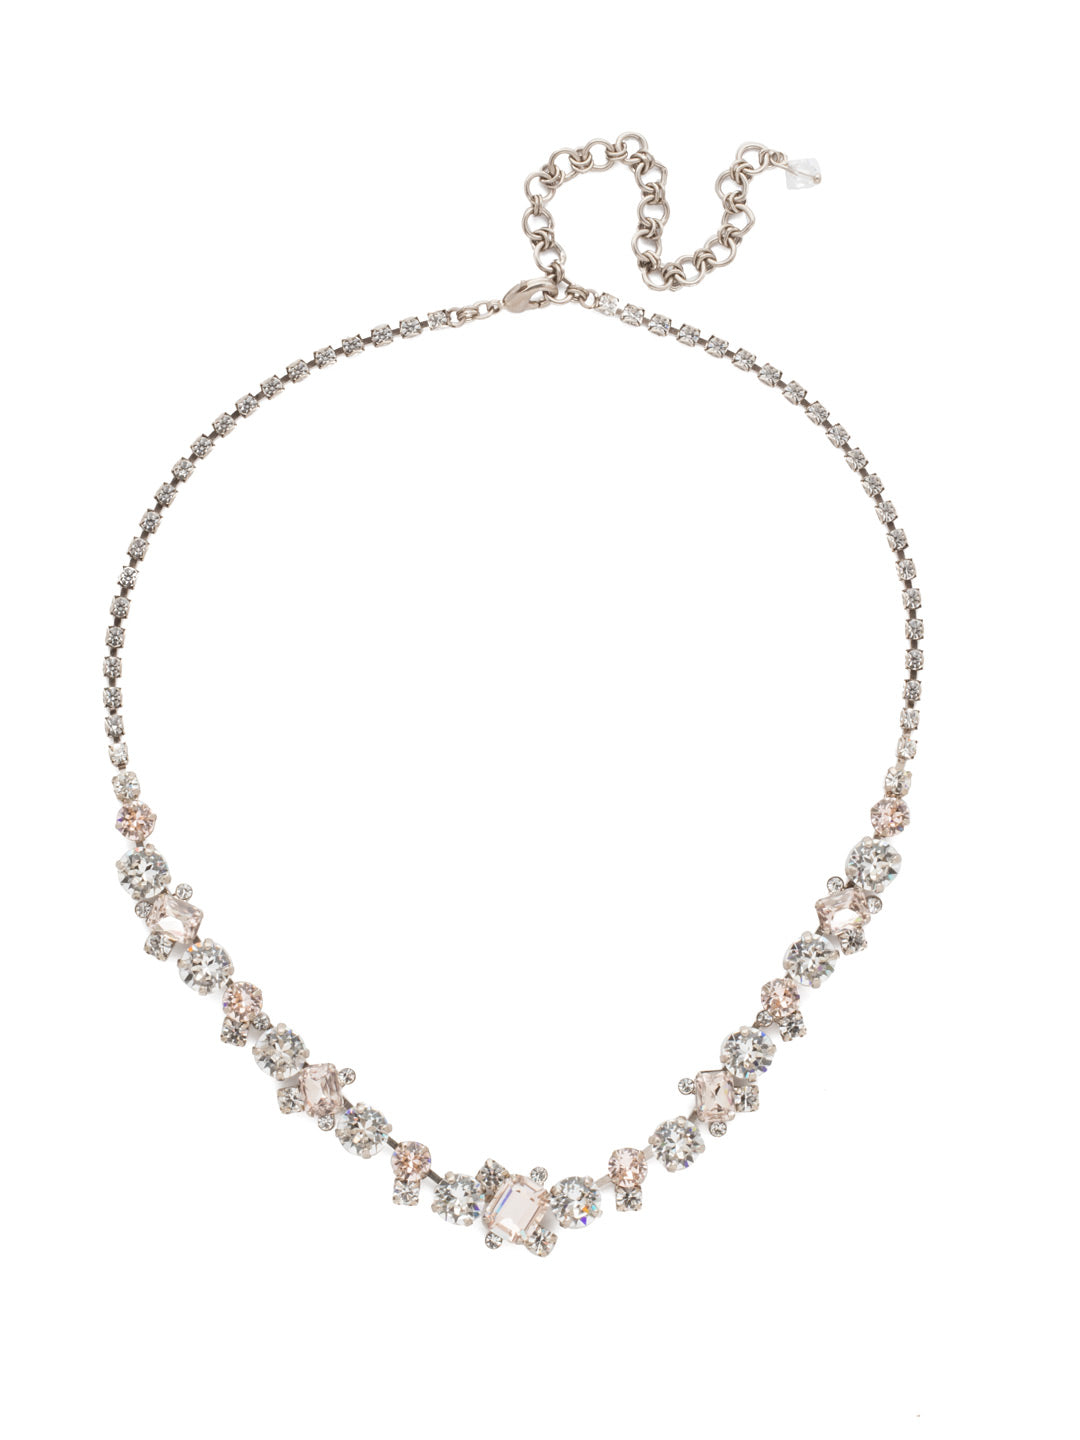 Sophisticated Tennis Necklace - NDK17ASPLS